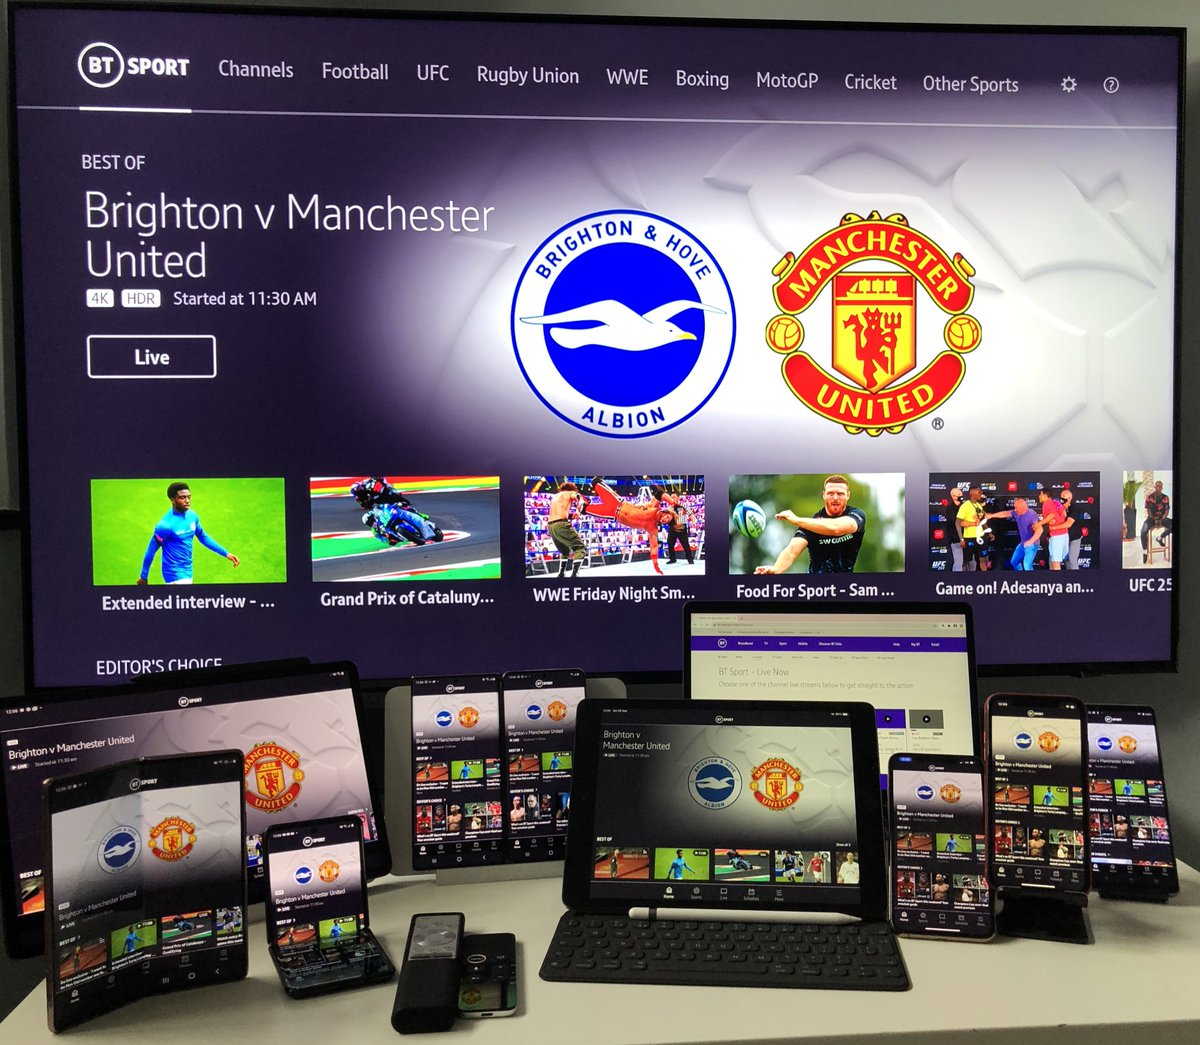 Bumper weekend starts with BT Sport Ultimate on more devices #SportsBiz #SportsTech #PL #PremierLeague #BHAMUN #MUFC #BHAFC #UHD #4K #HDR https://t.co/xzm0cFL3ri